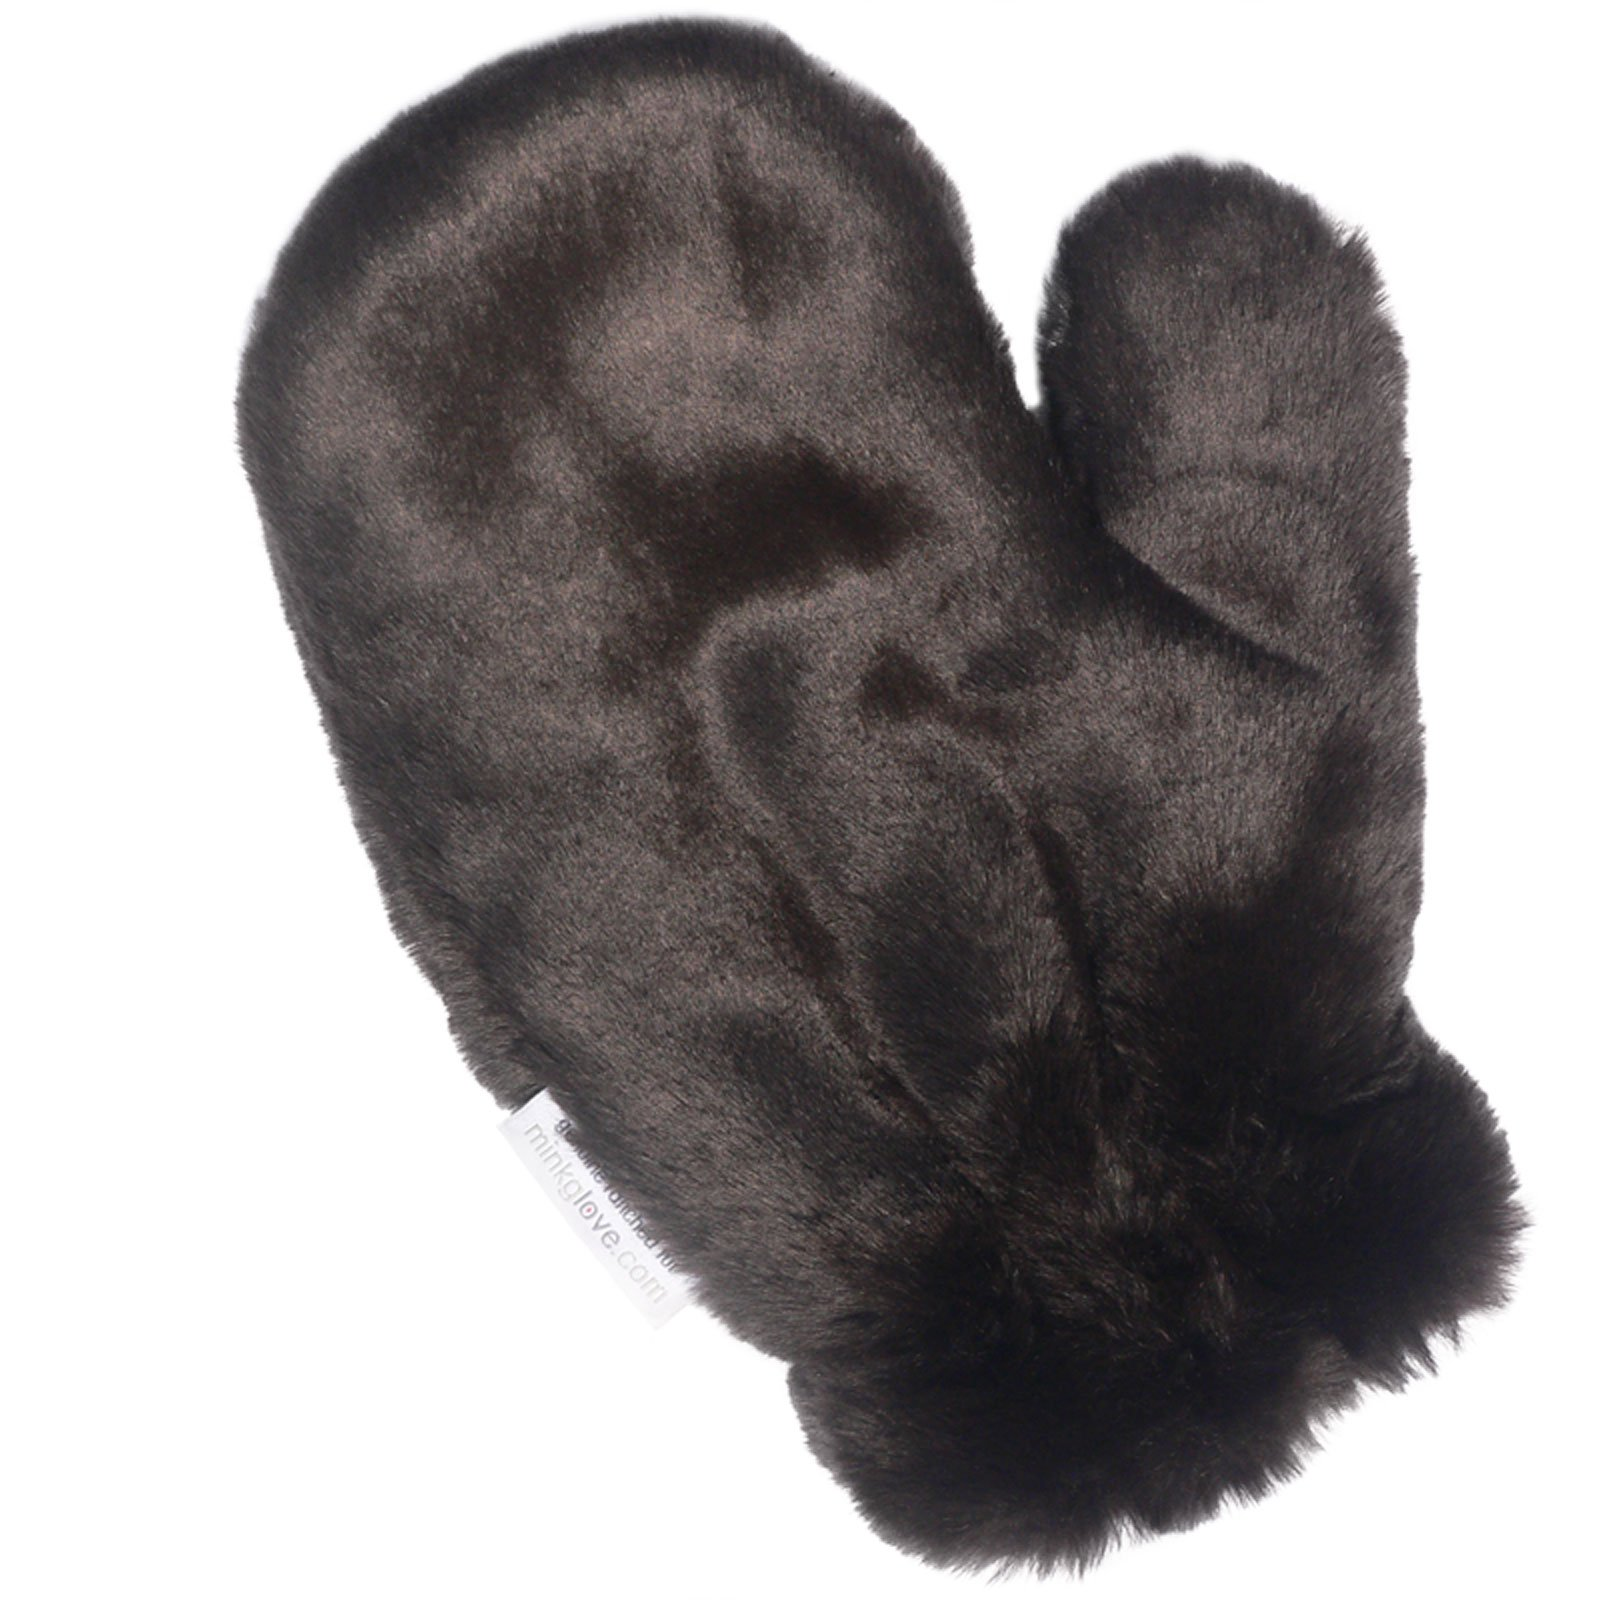 MinkgLove Fake Rex Rabbit Massage Glove, Smooth Velvety Sheared Feel, Brown, Unisex, Hand Tailored, One Size - Double Sided Faux Fake Fur